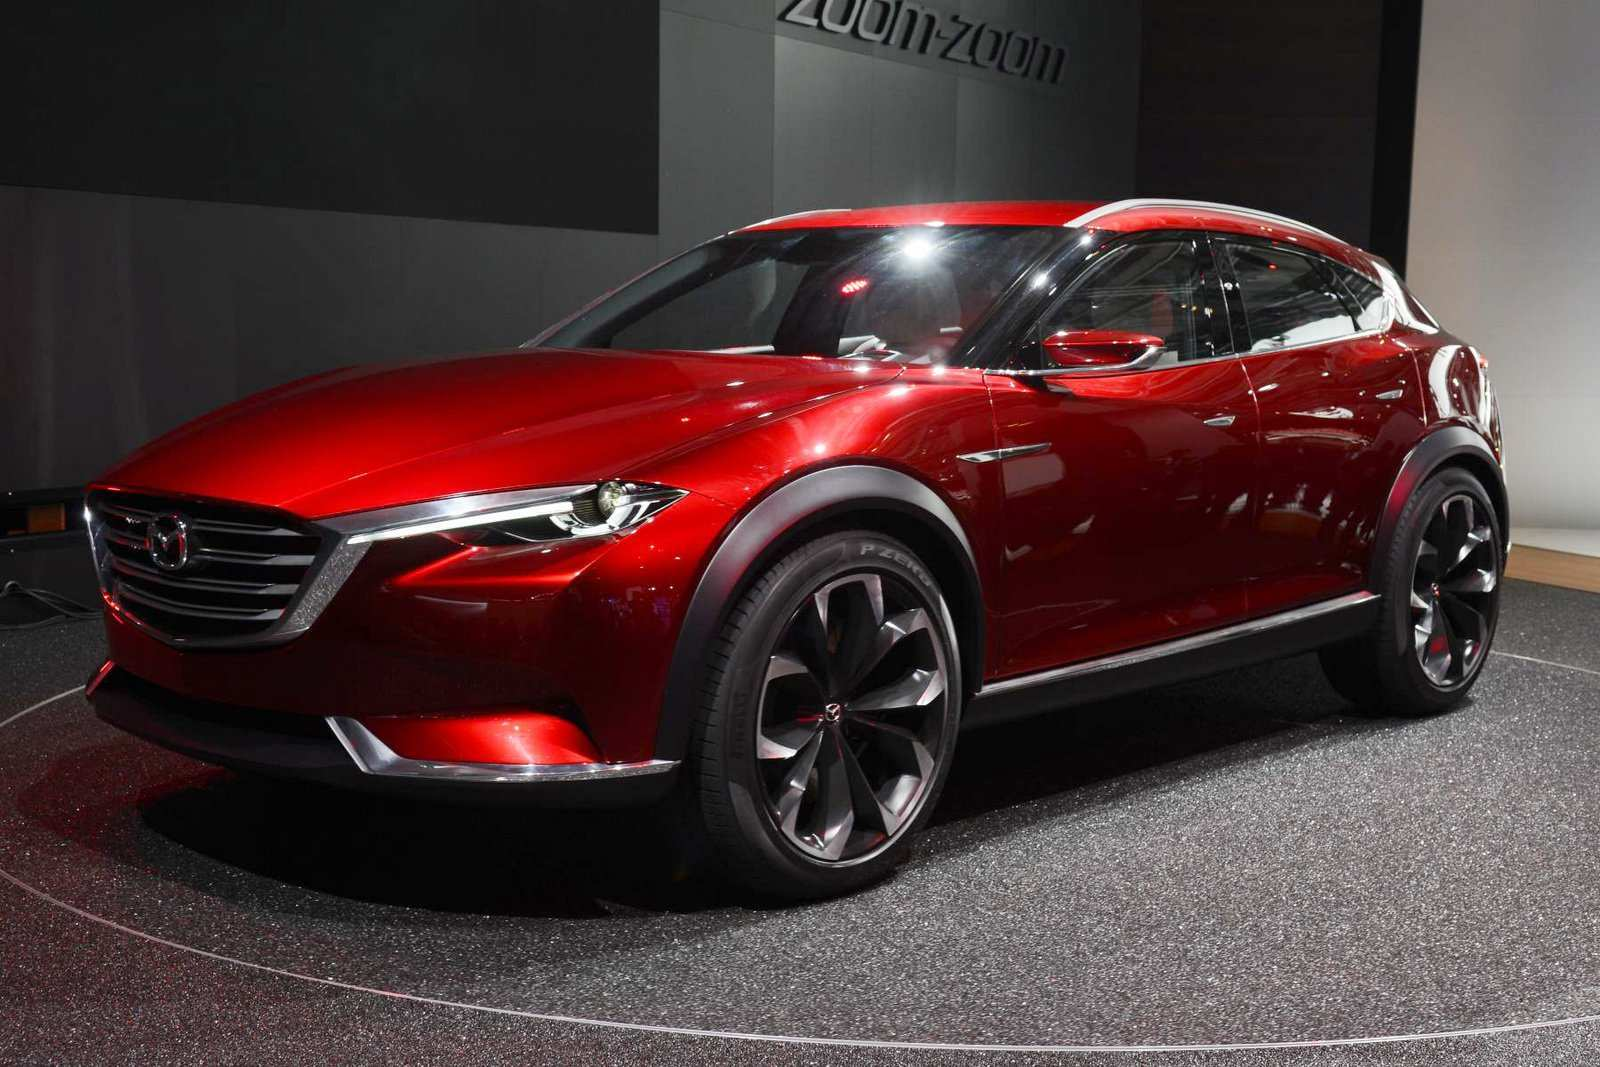 90 Gallery of When Does Mazda Release 2020 Models Exterior with When Does Mazda Release 2020 Models